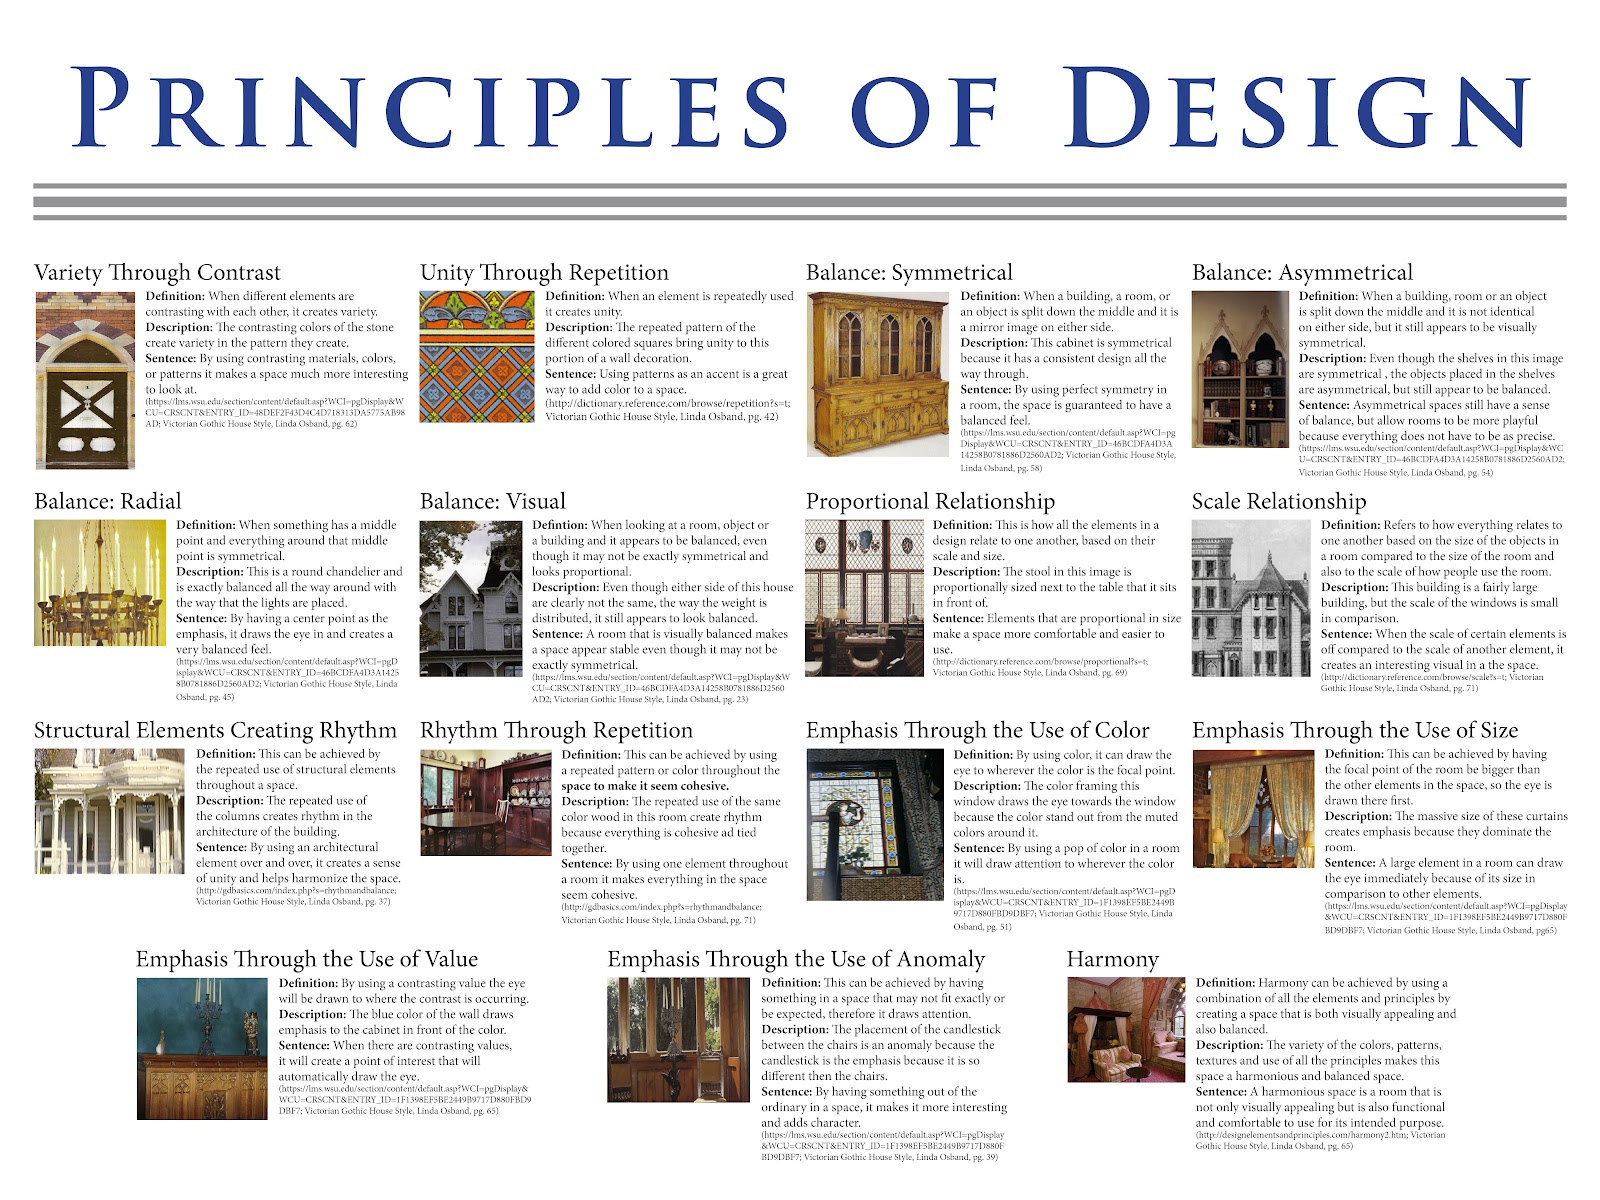 Elements And Principles Of Design Contrast : Principles of design visual communication